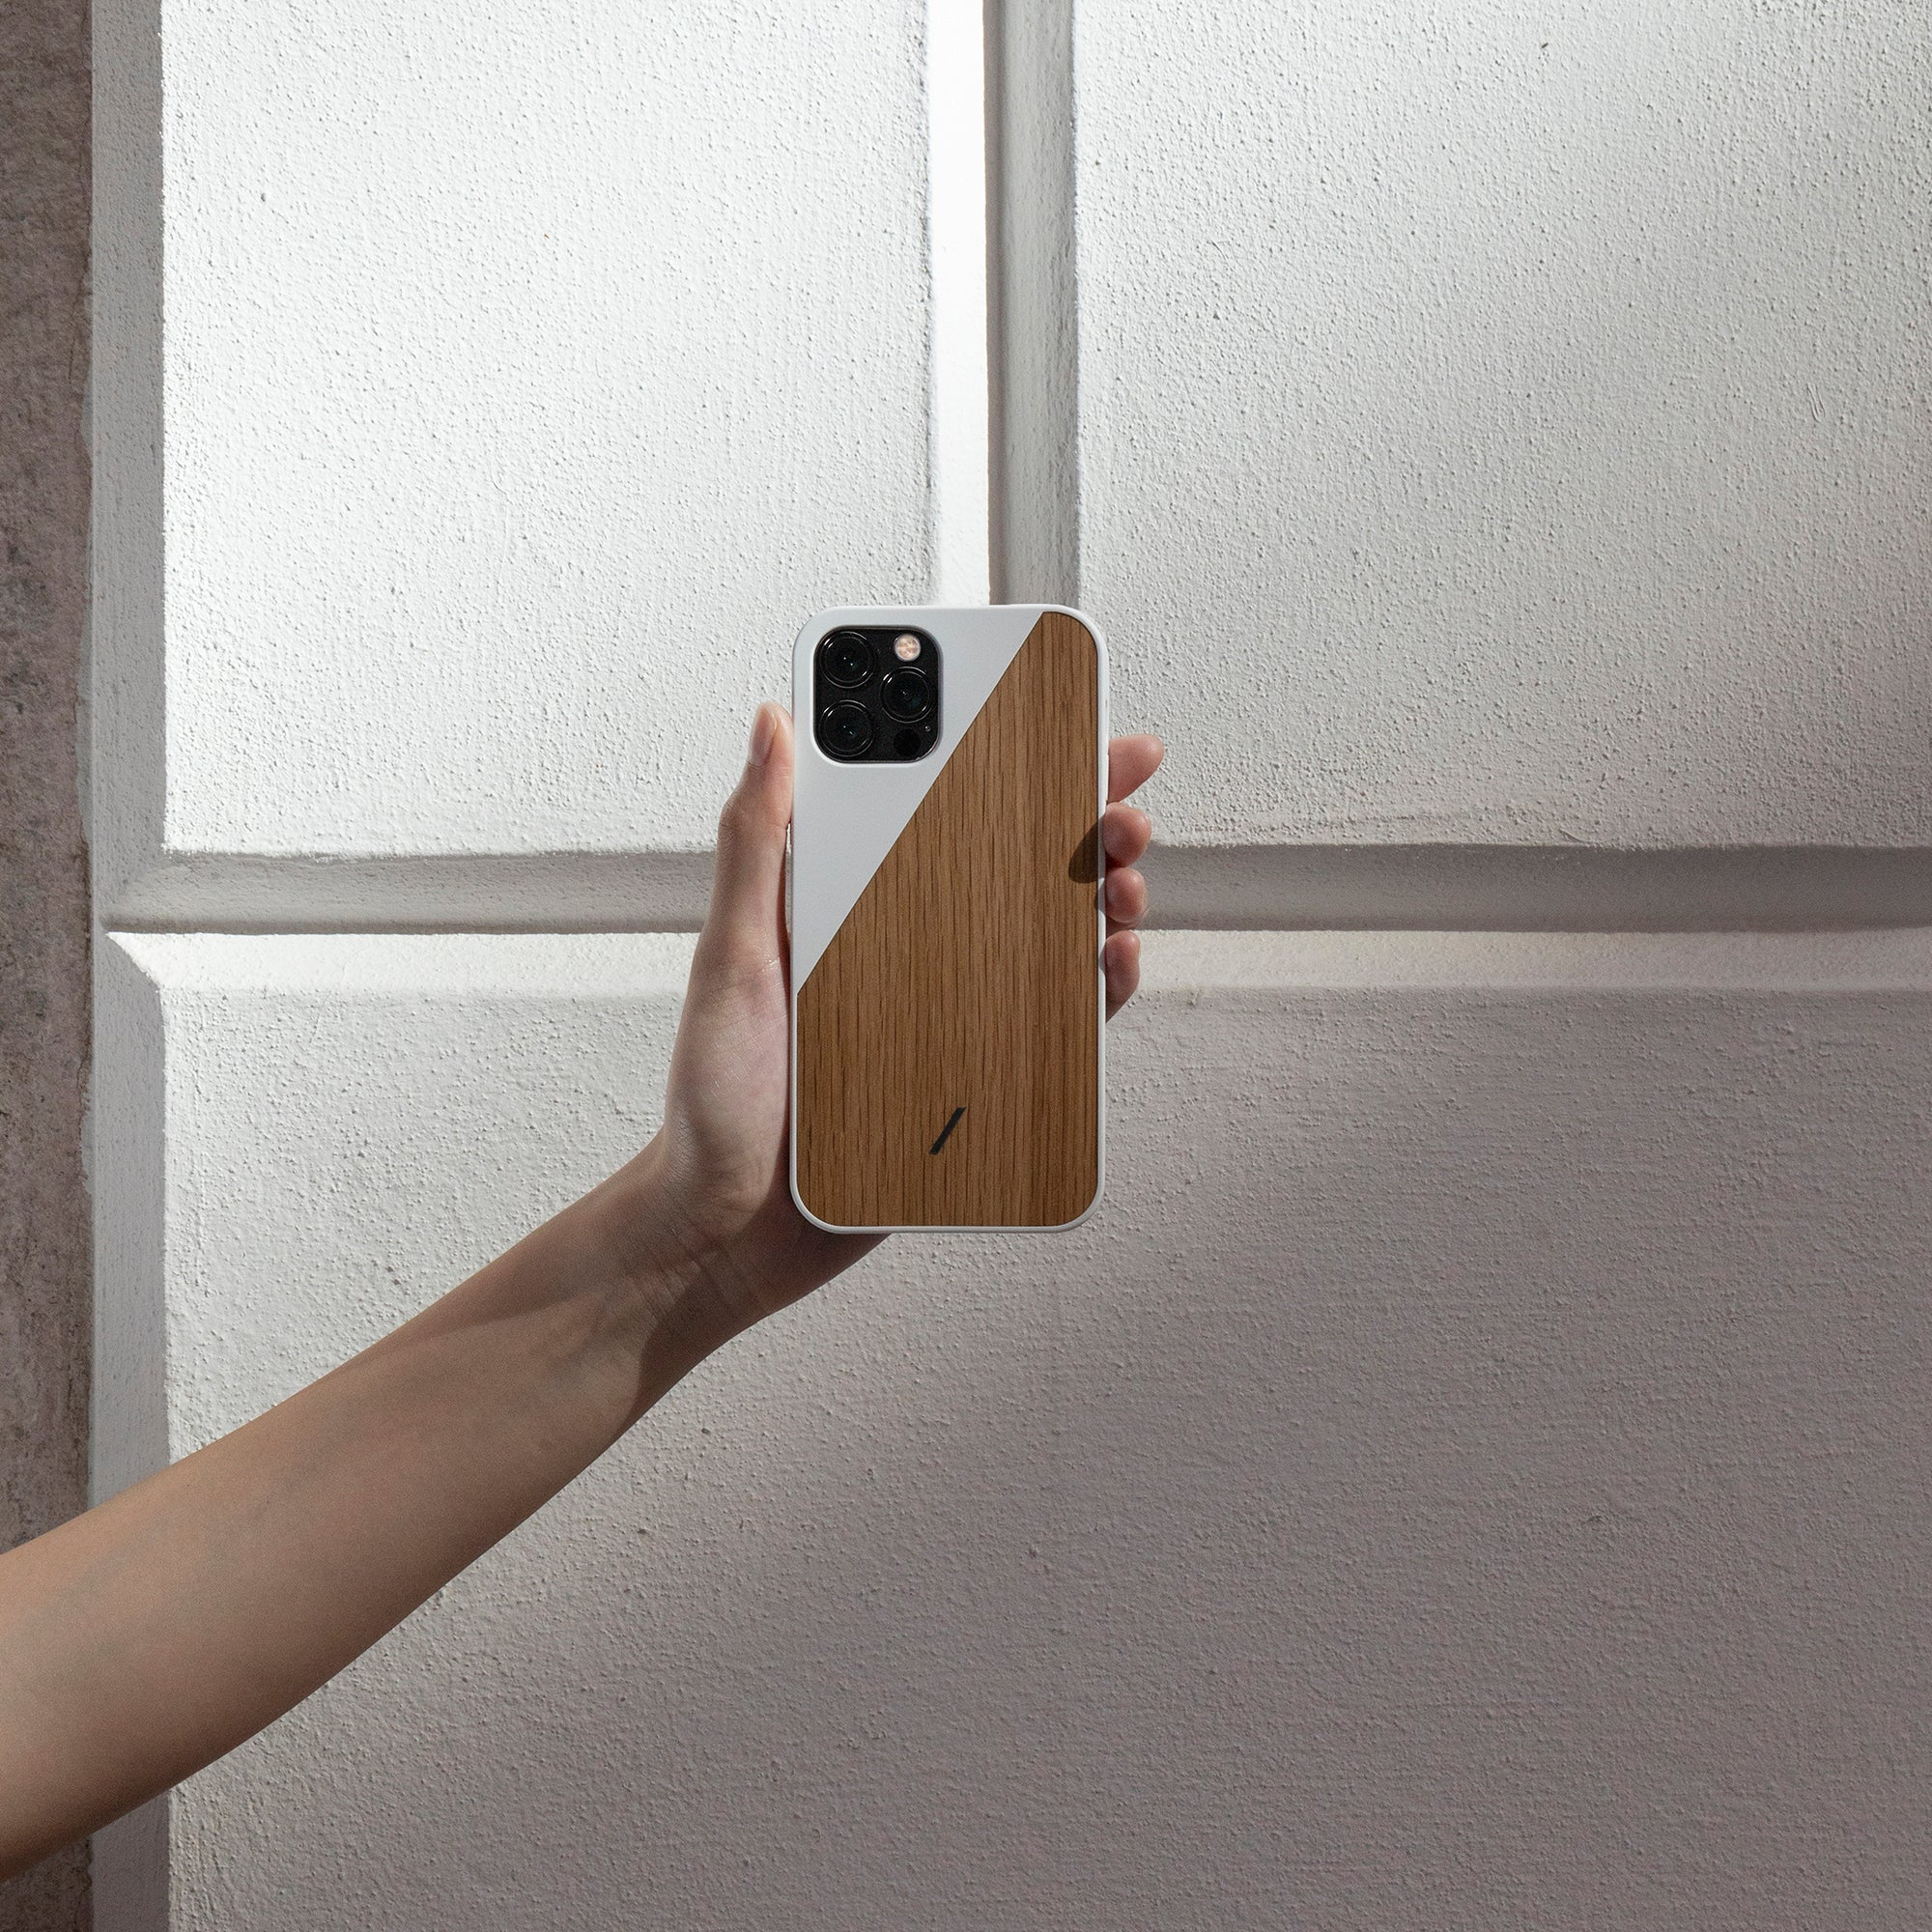 34316690522251,34316690555019,Clic Wooden (iPhone 12 Pro Max)